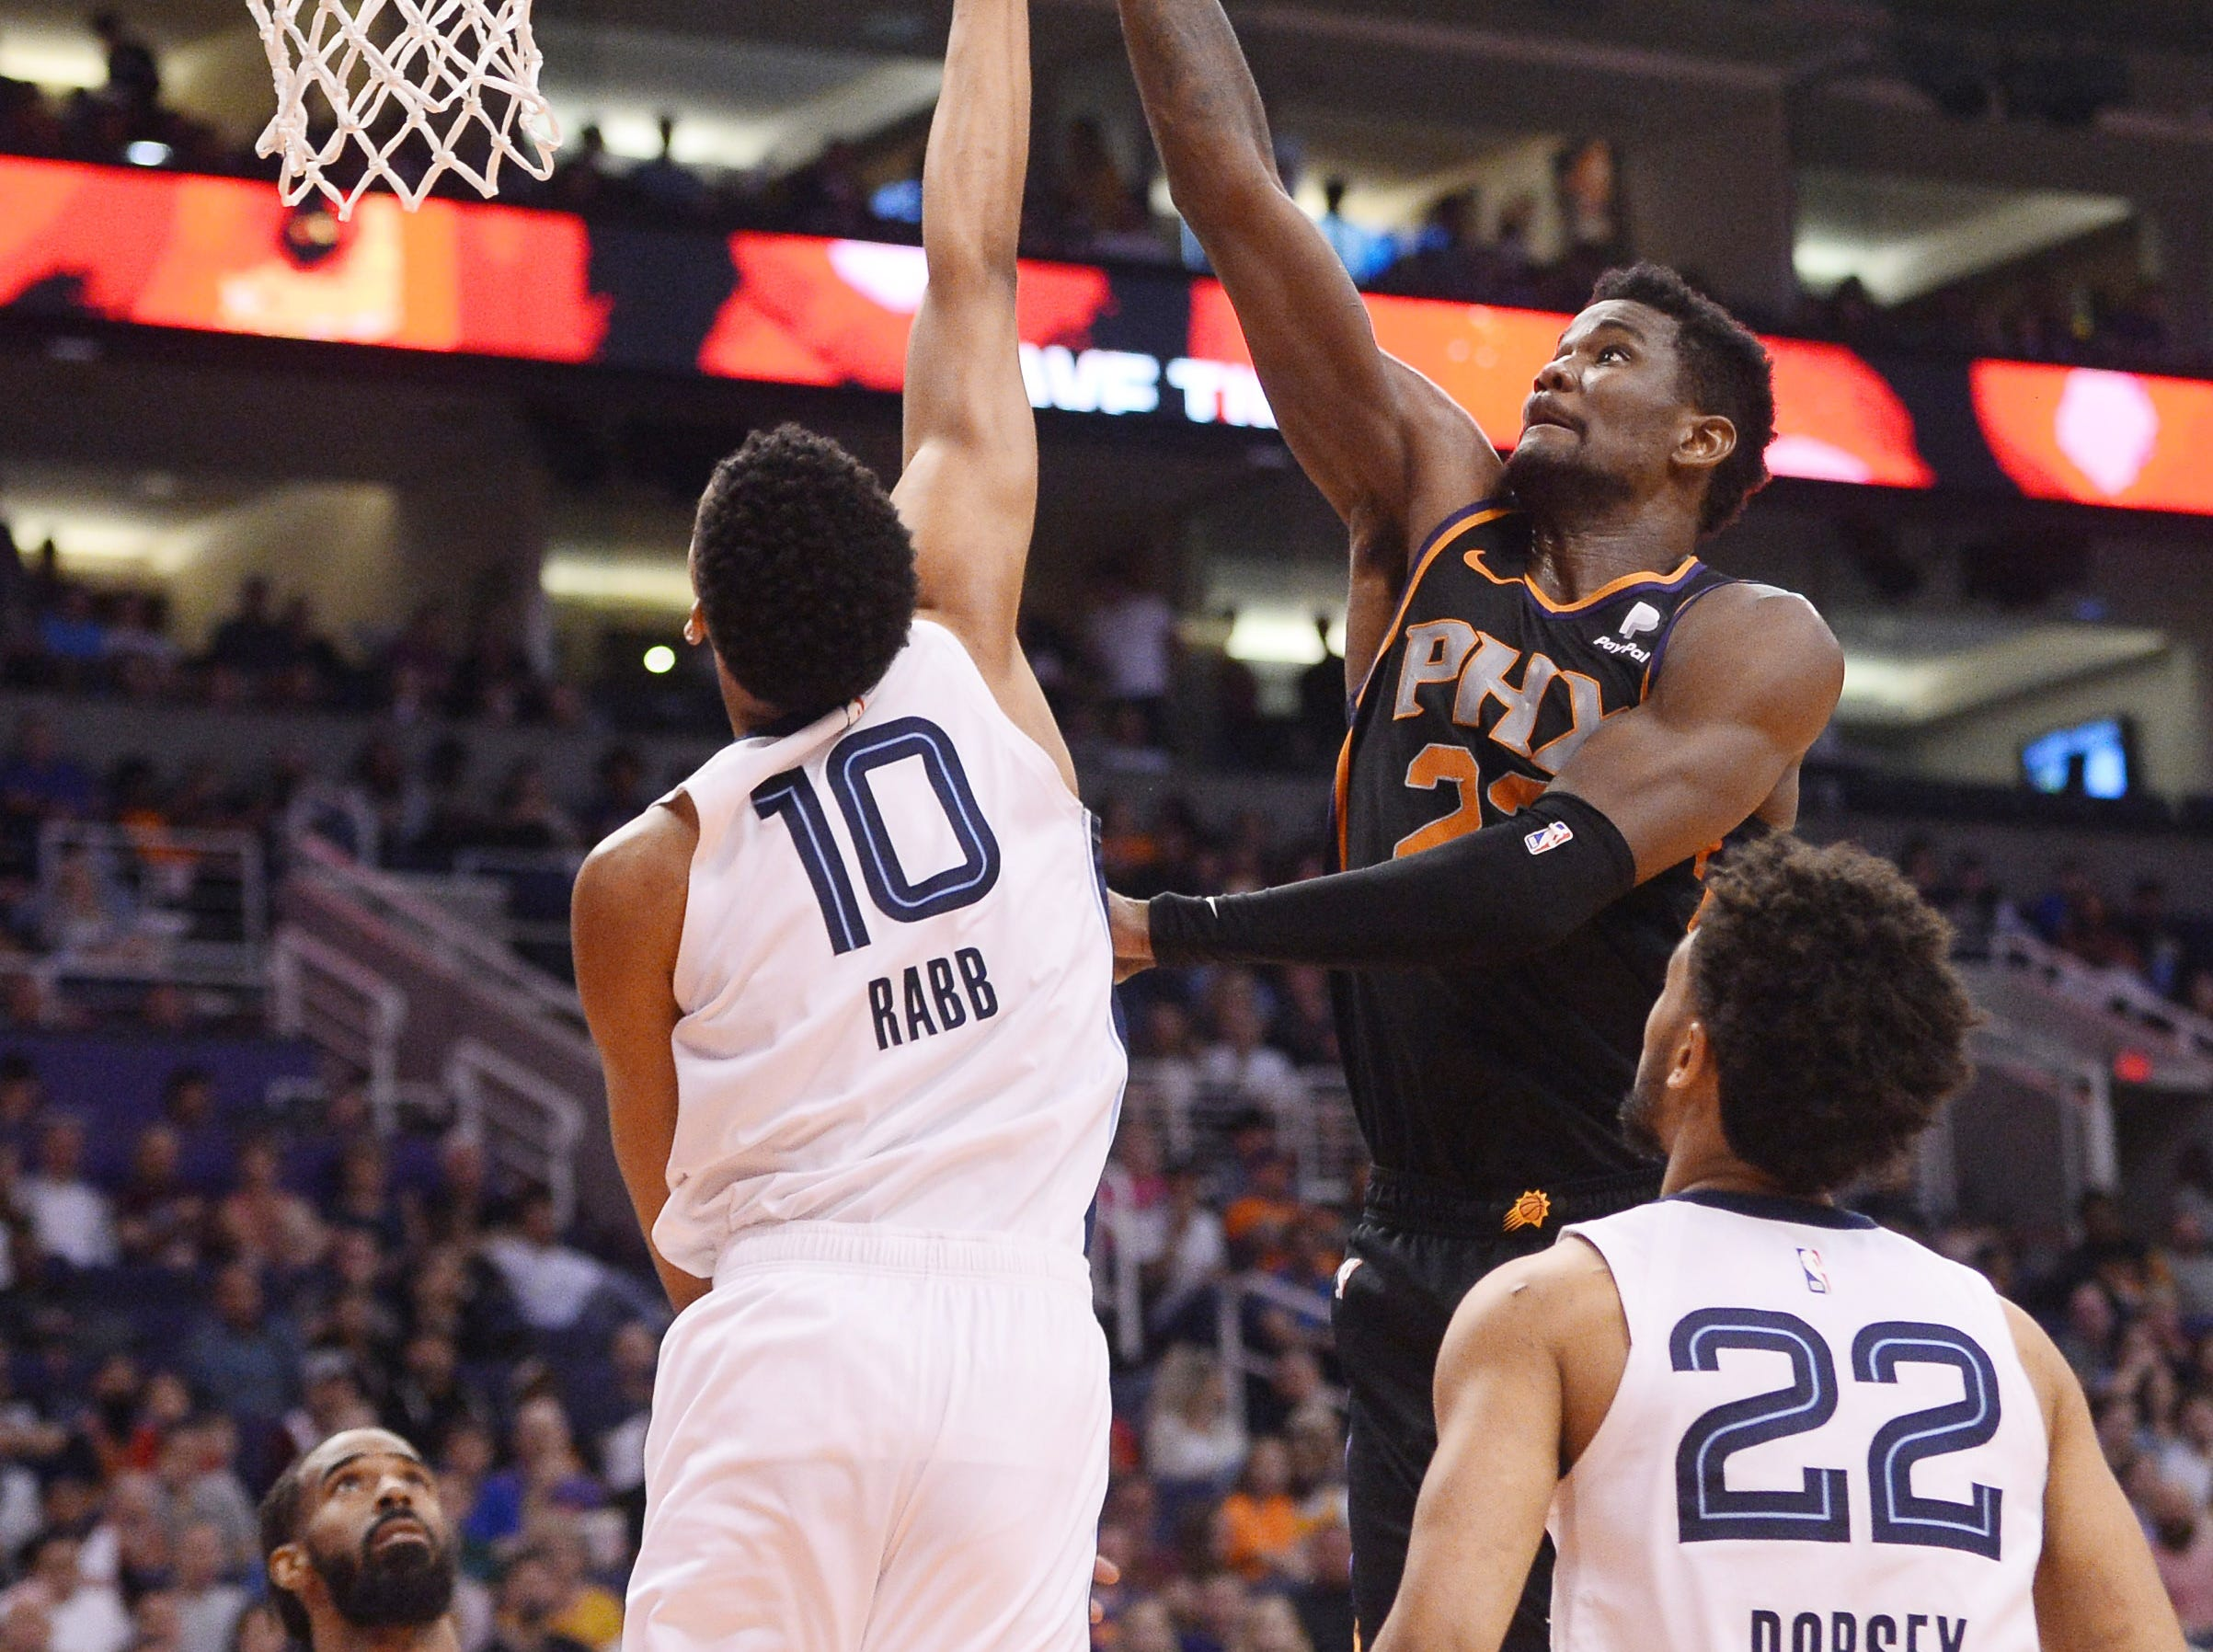 Mar 30, 2019; Phoenix, AZ, USA; Phoenix Suns center Deandre Ayton (22) shoots over Memphis Grizzlies forward Ivan Rabb (10) during the first half at Talking Stick Resort Arena. Mandatory Credit: Joe Camporeale-USA TODAY Sports